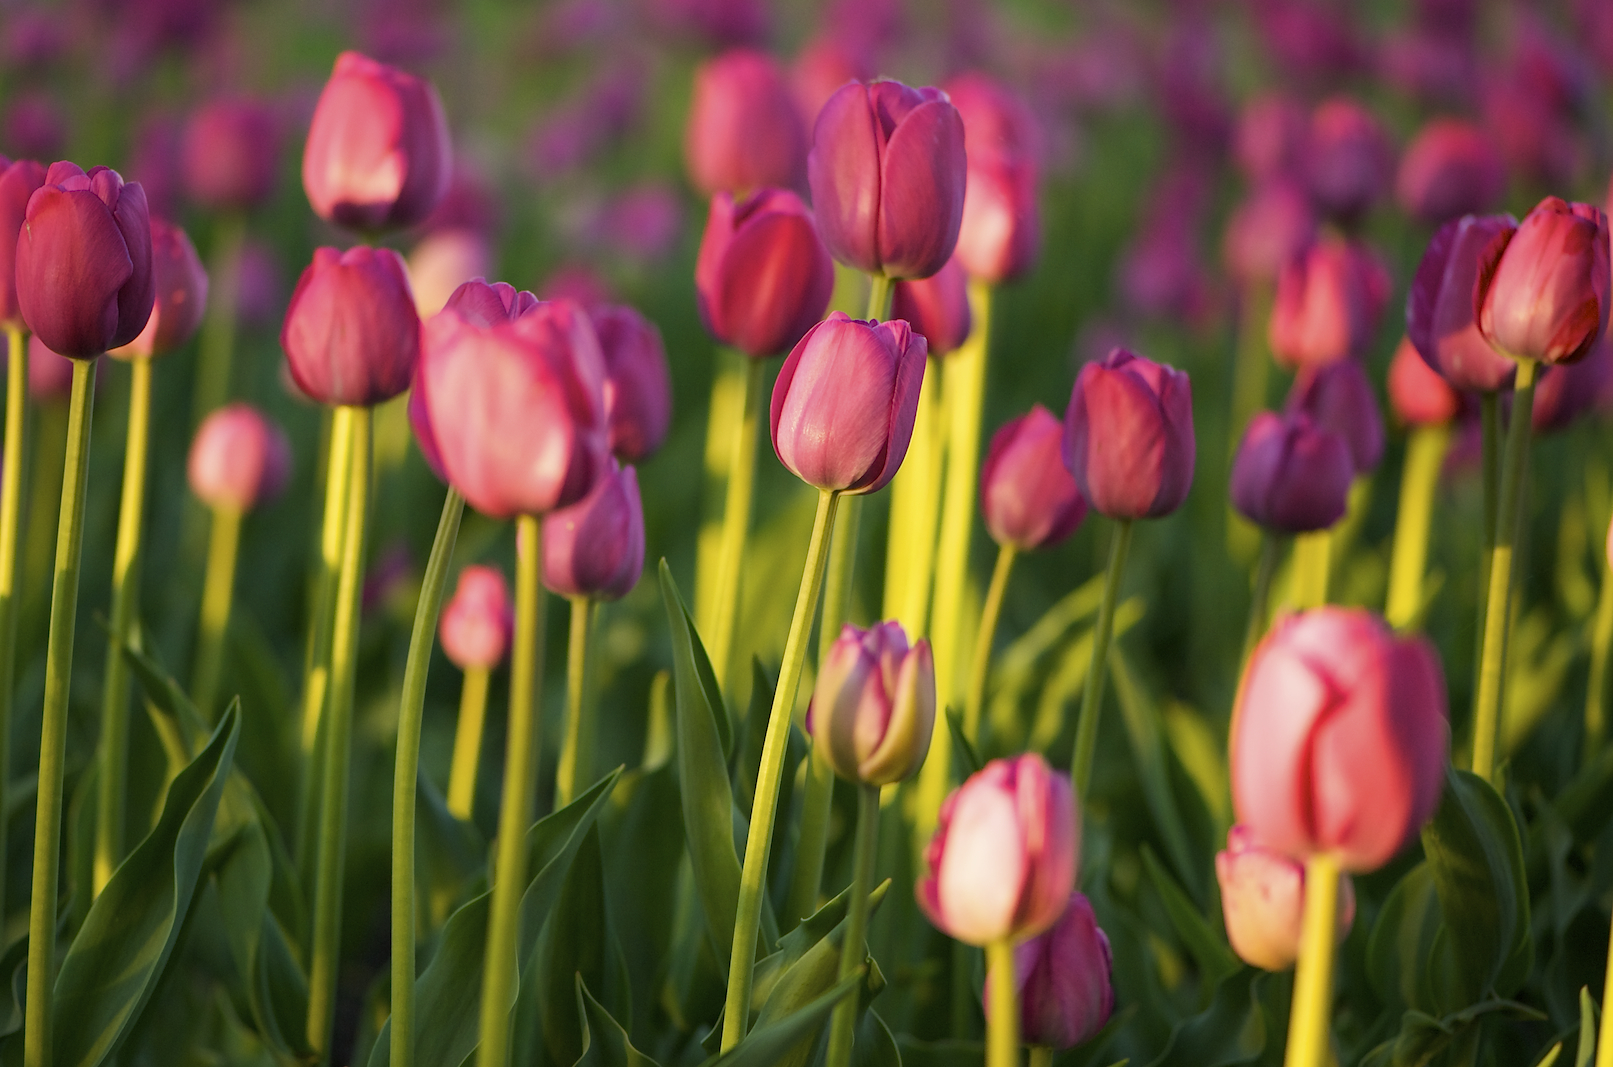 tulips in the spring - photo #22